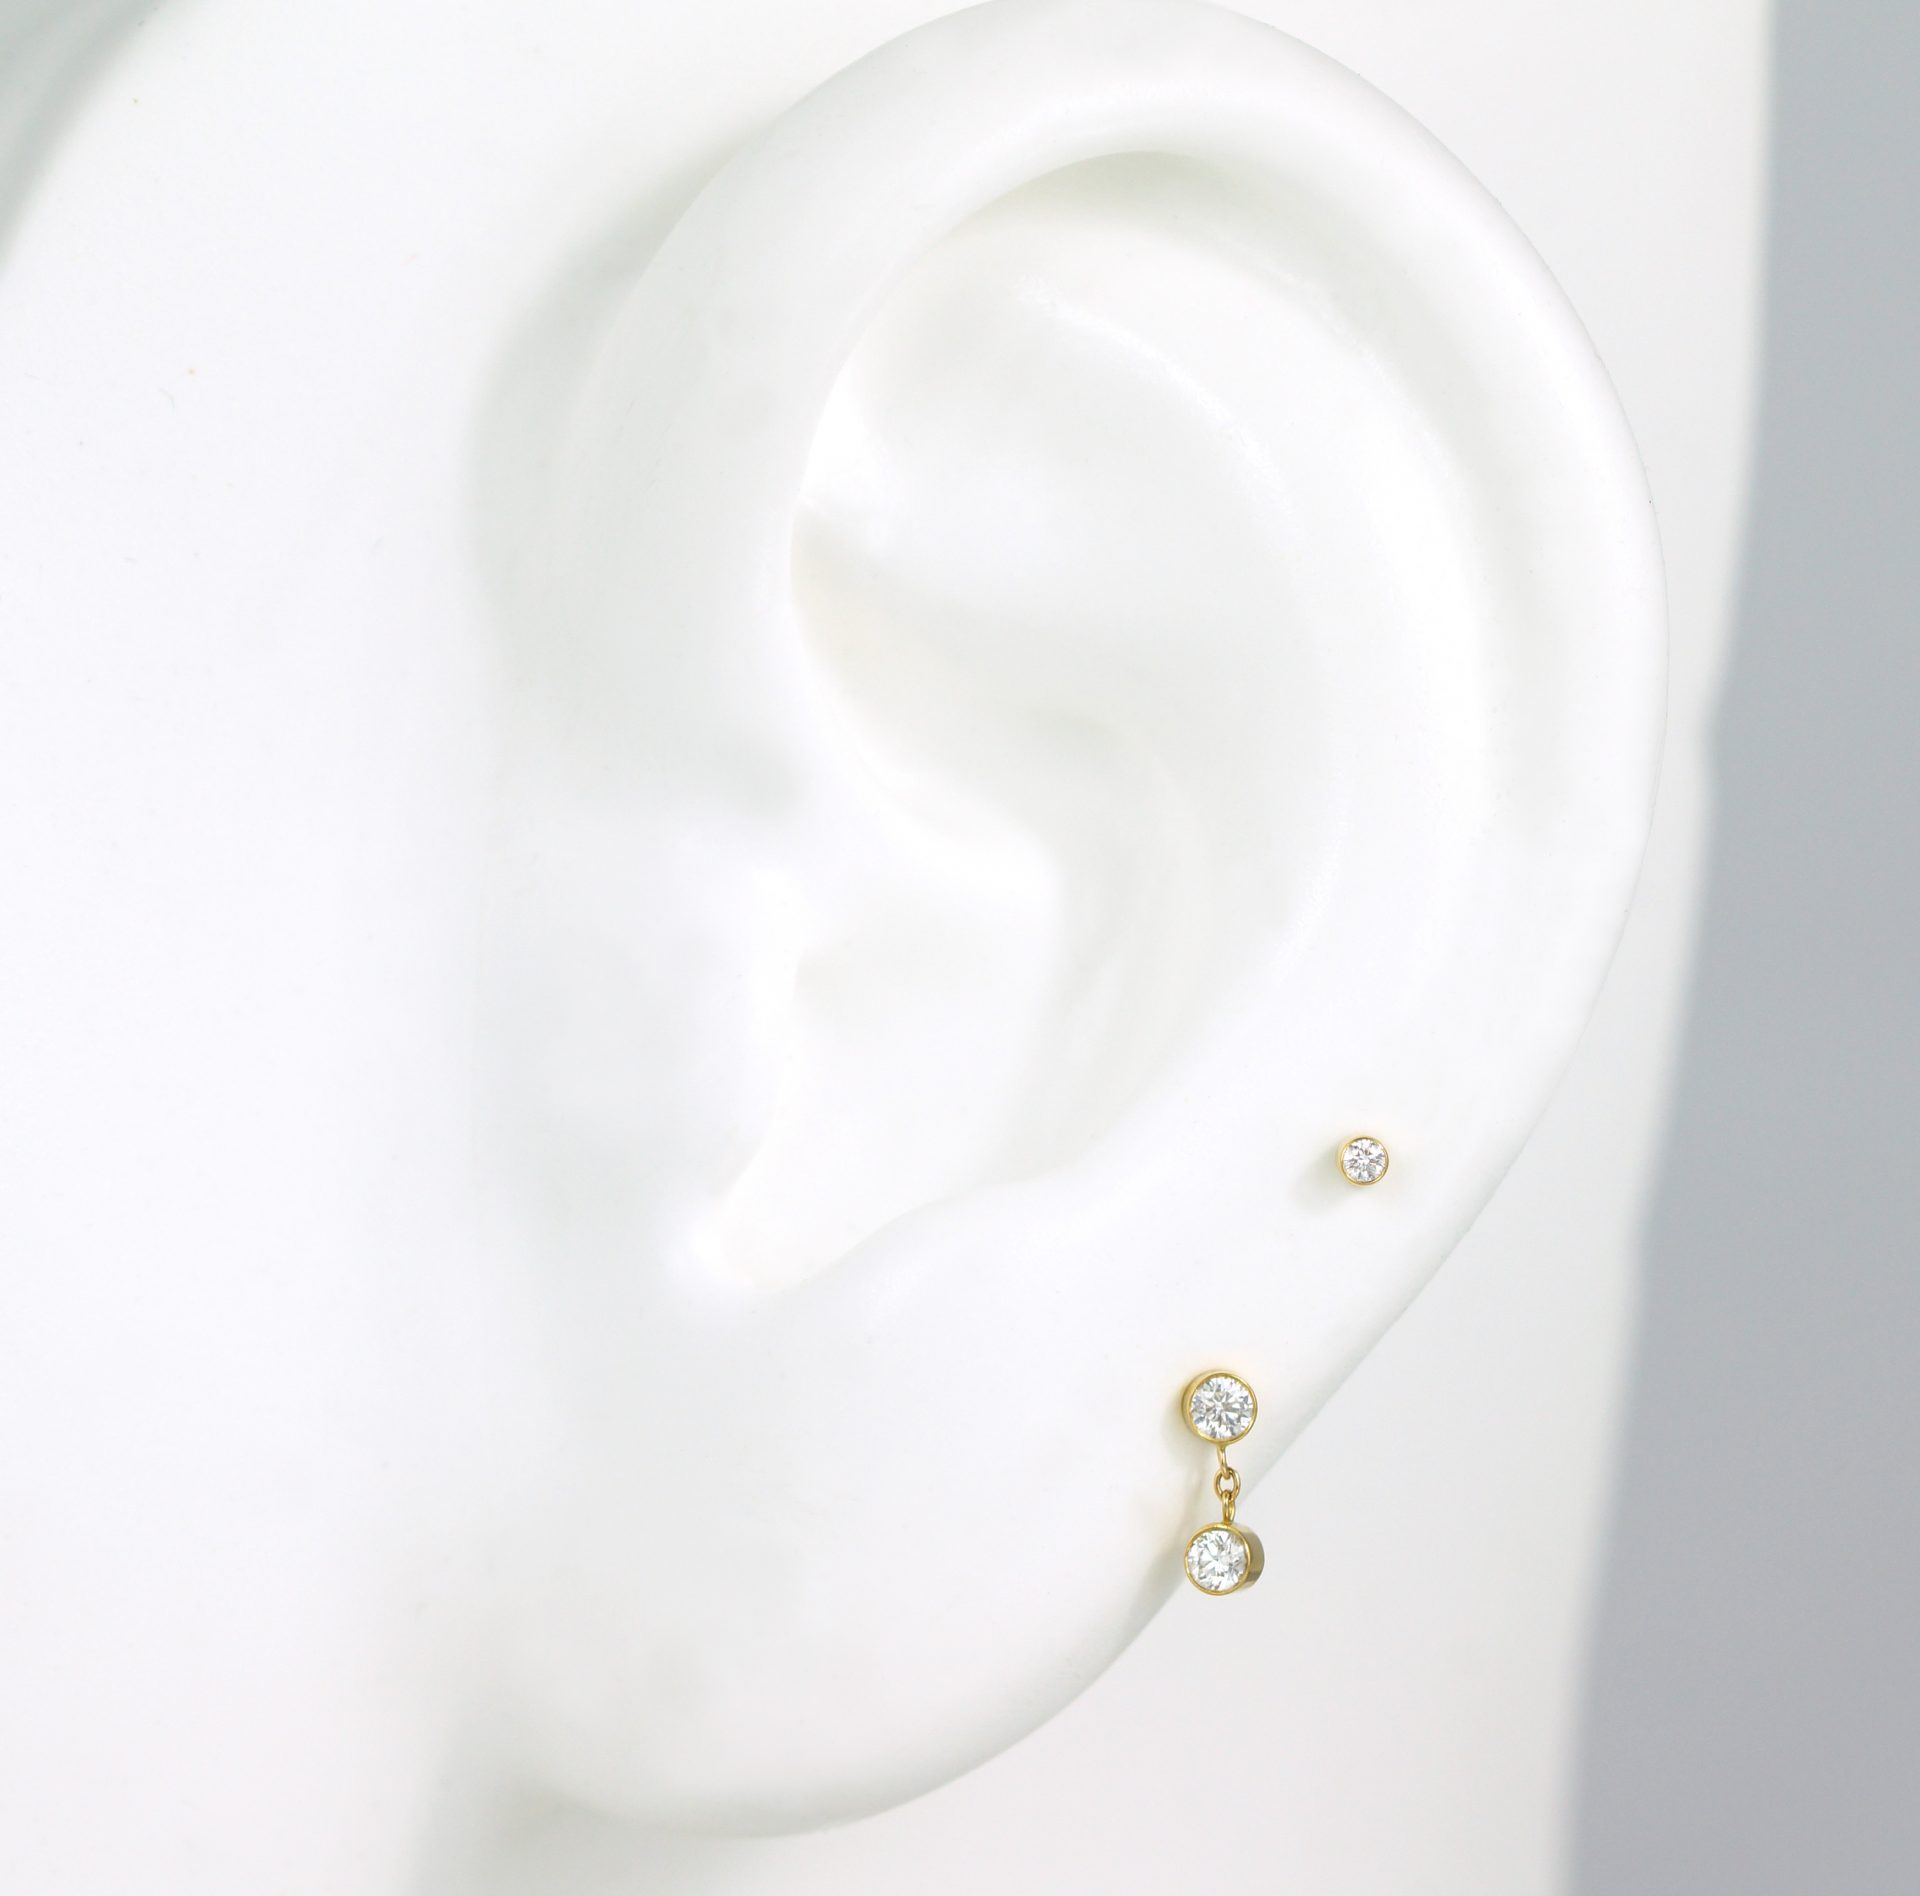 Multi-buy Option. You can get this set of luxury piercing earrings for a better price. Save £ on these 18k gold diamond cartilage studs!